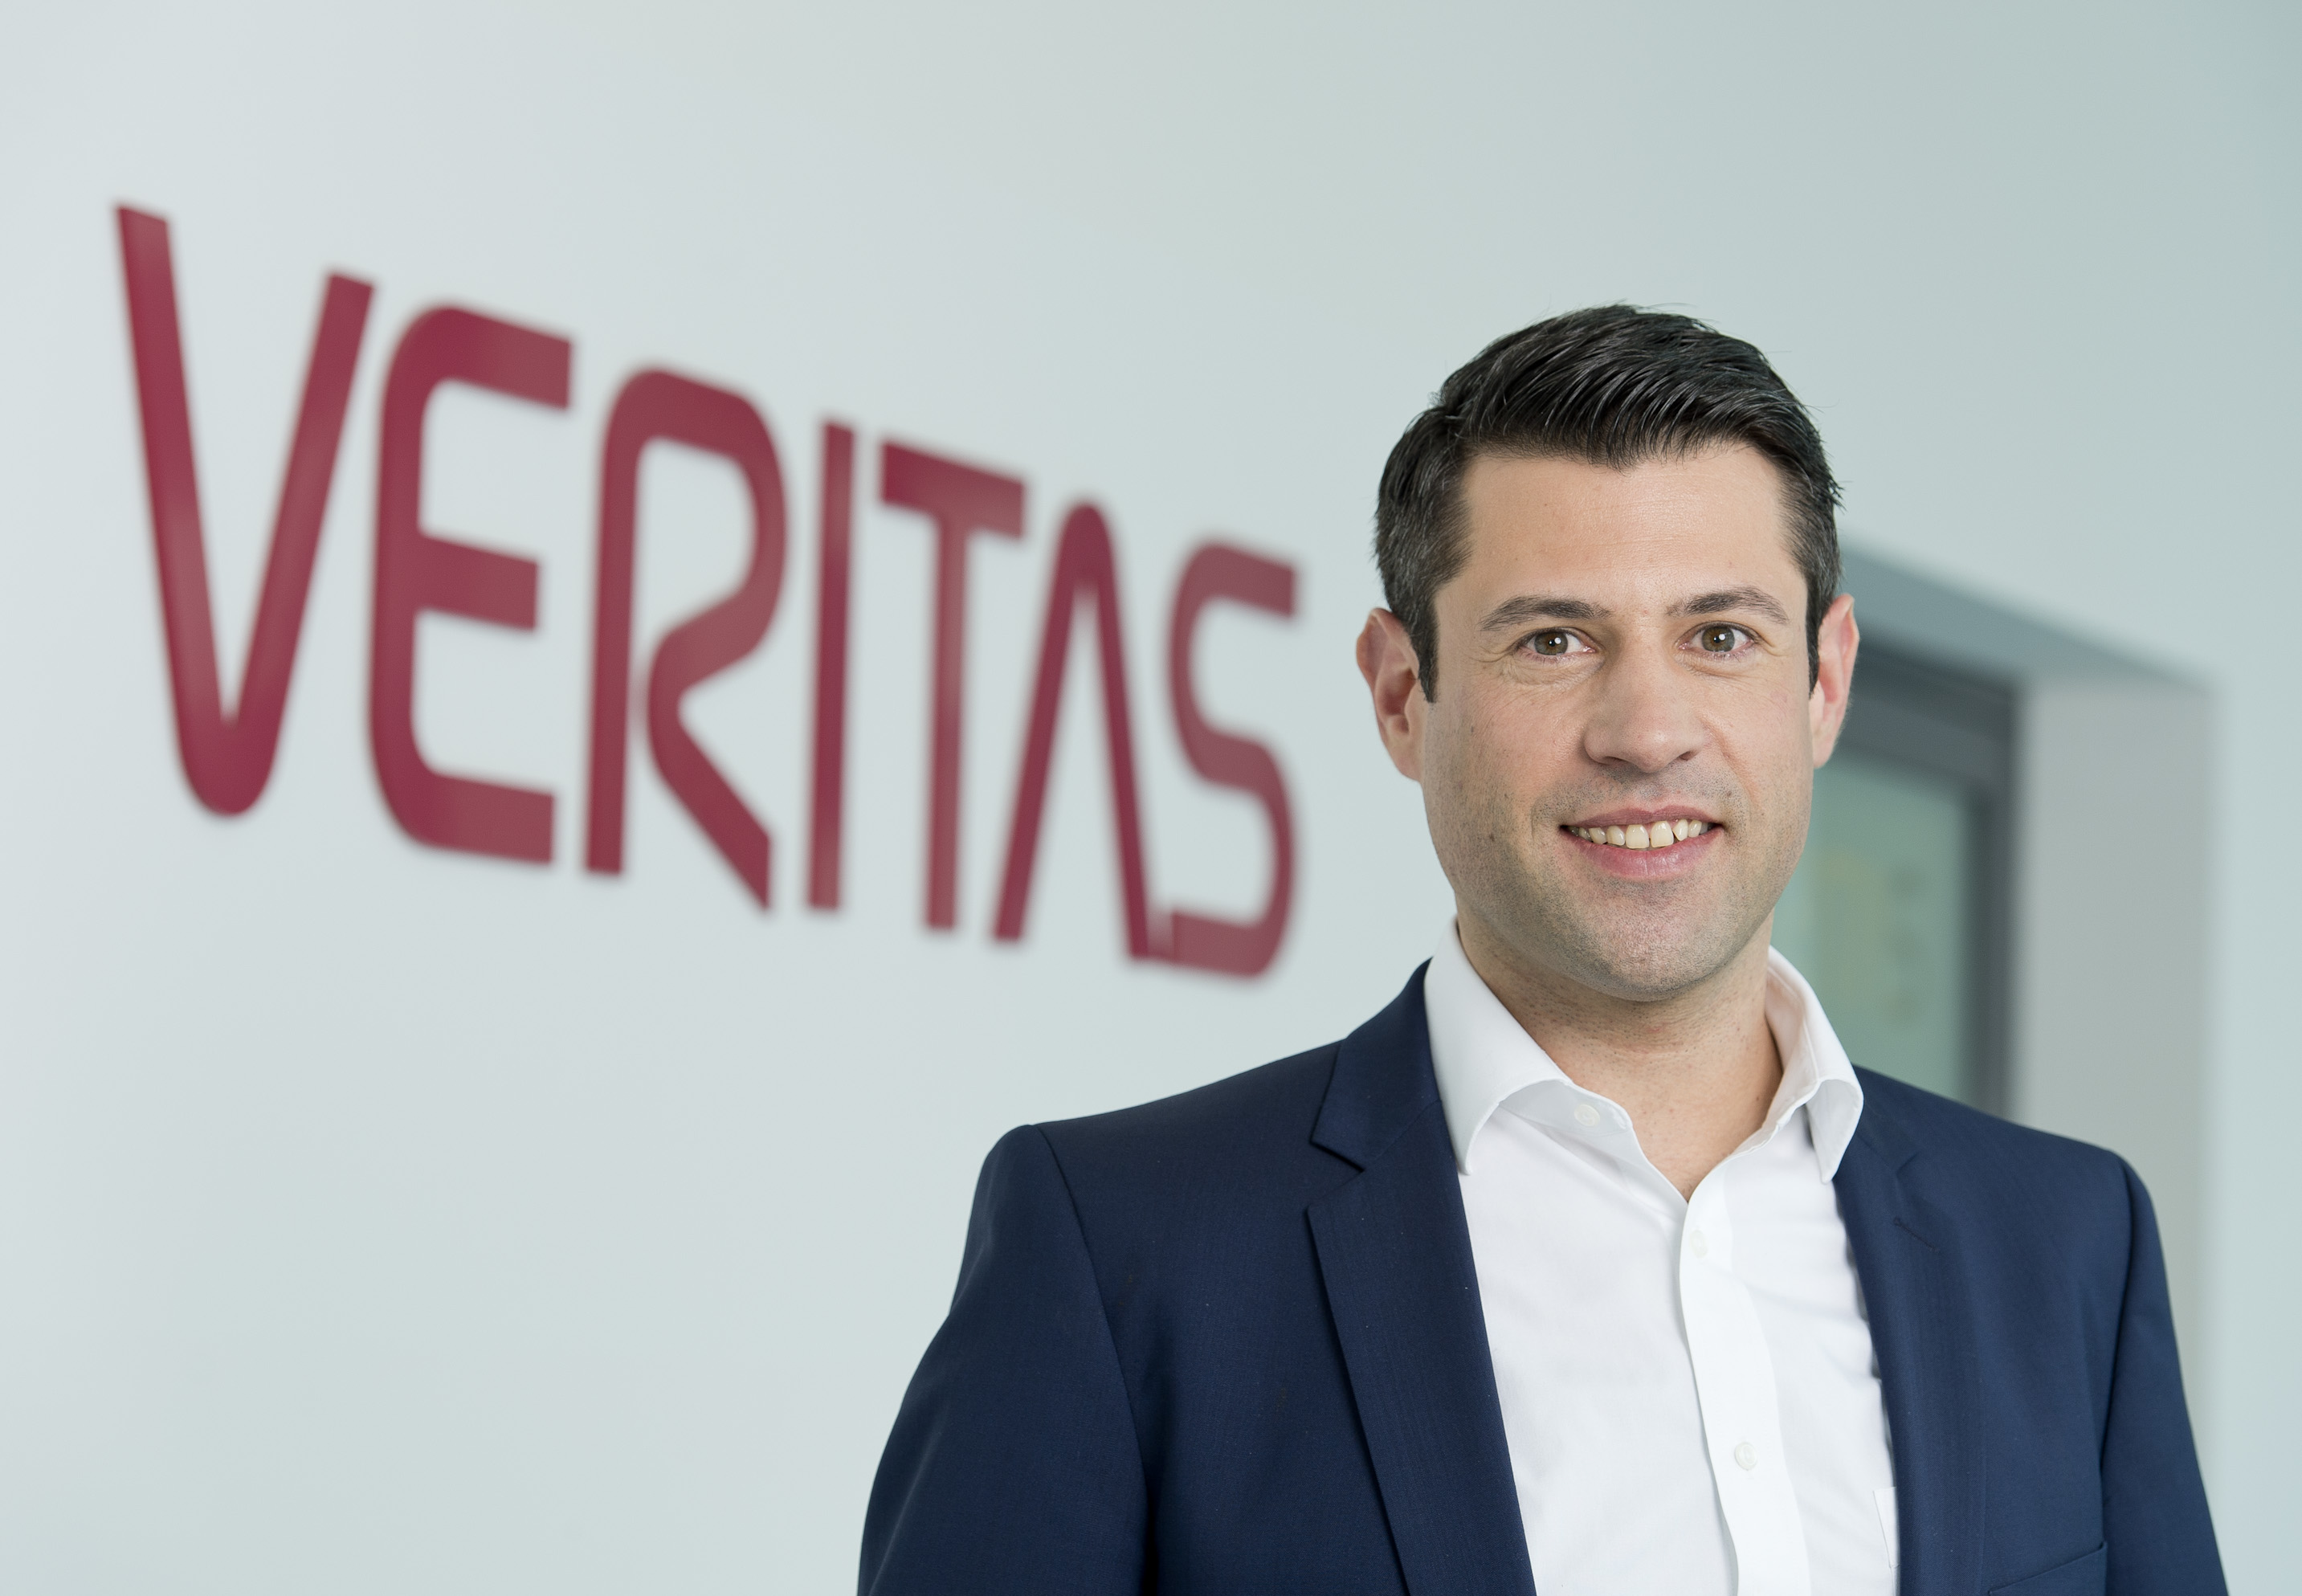 Mathias Wenig, Senior Manager Technology Sales und Digital Transformation Specialists, DACH, bei Veritas Technologies